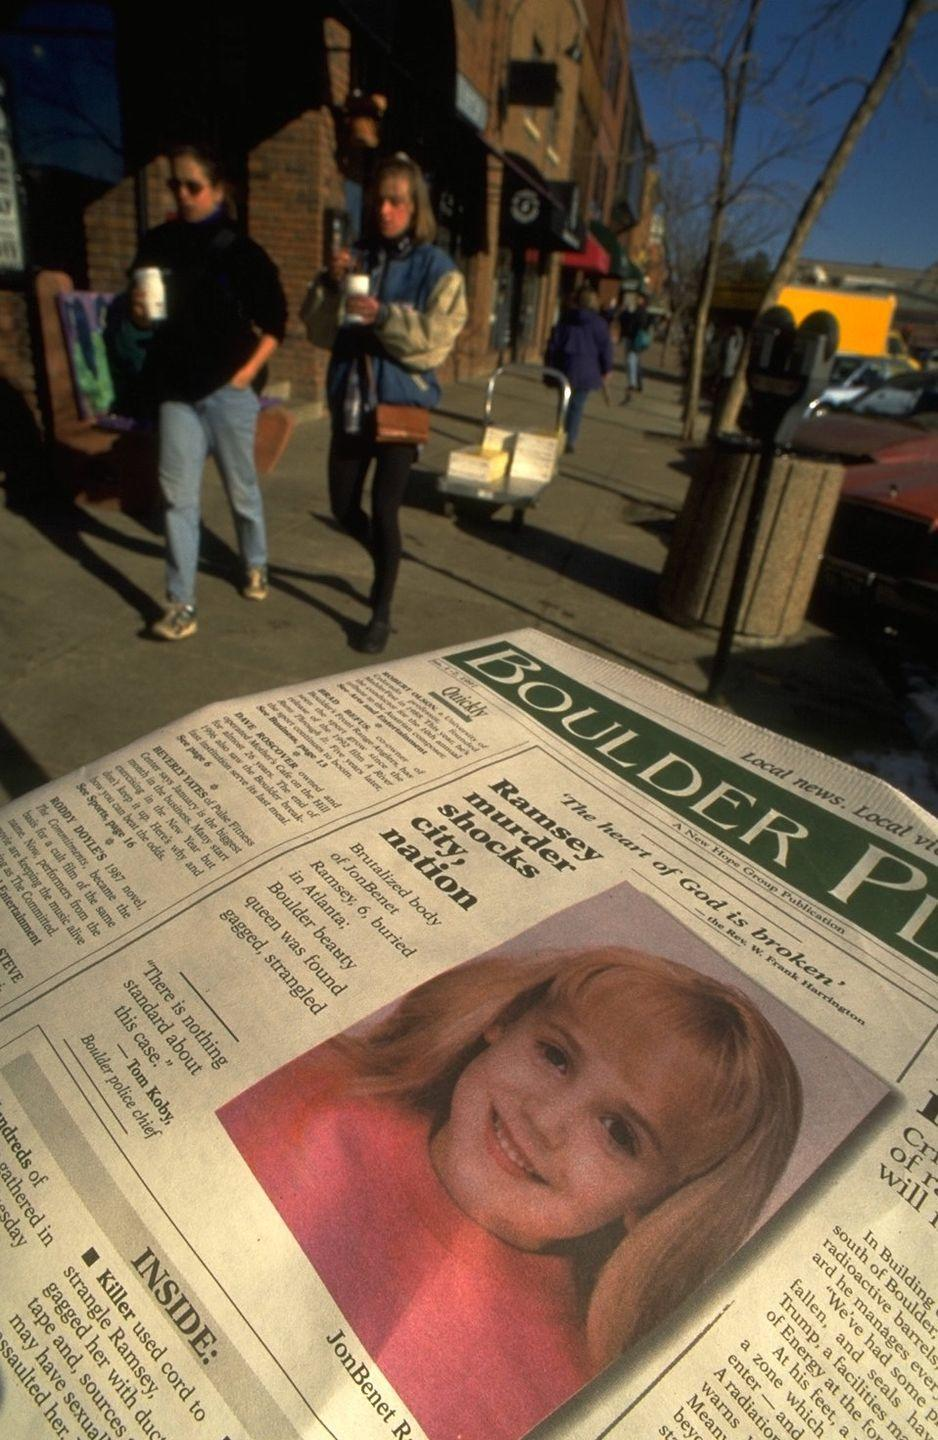 <p>December of 1996 was a pretty tough month. JonBenét Ramsey, a six year old child beauty queen, had been reported missing from her home in Boulder, Colorado. Her body was found eight hours later in her parent's basement. A barrage of media coverage and speculations has left this unsolved case one of the most monumental of the decade. </p>